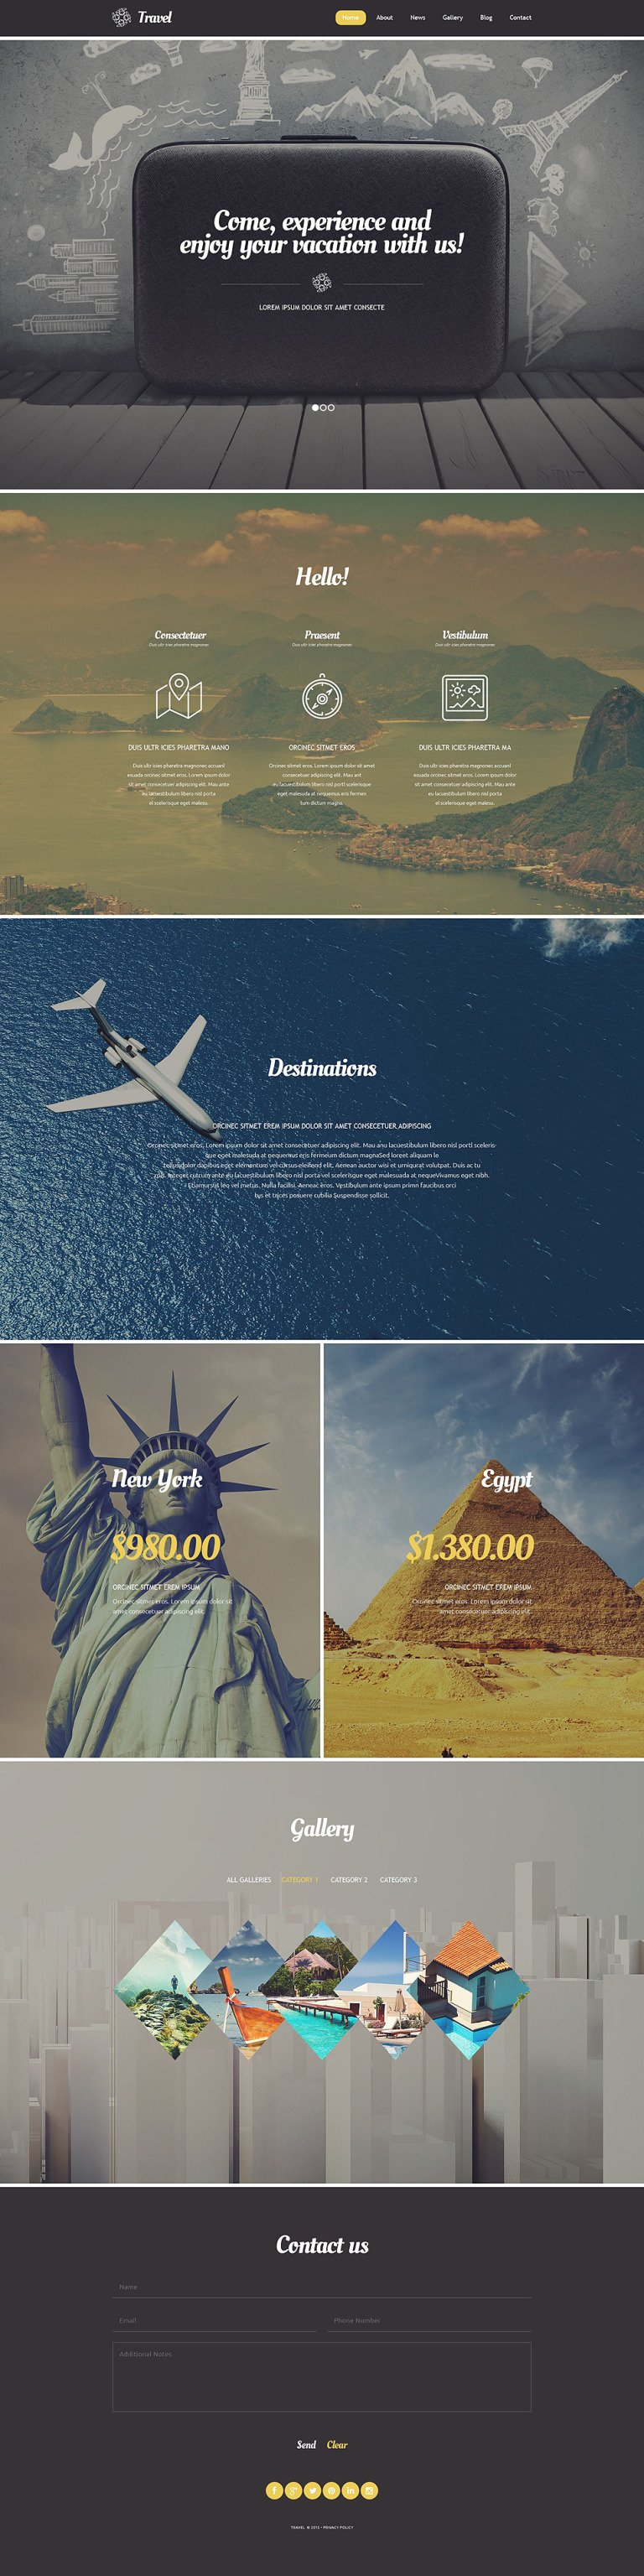 Travel Agency WordPress Theme New Screenshots BIG